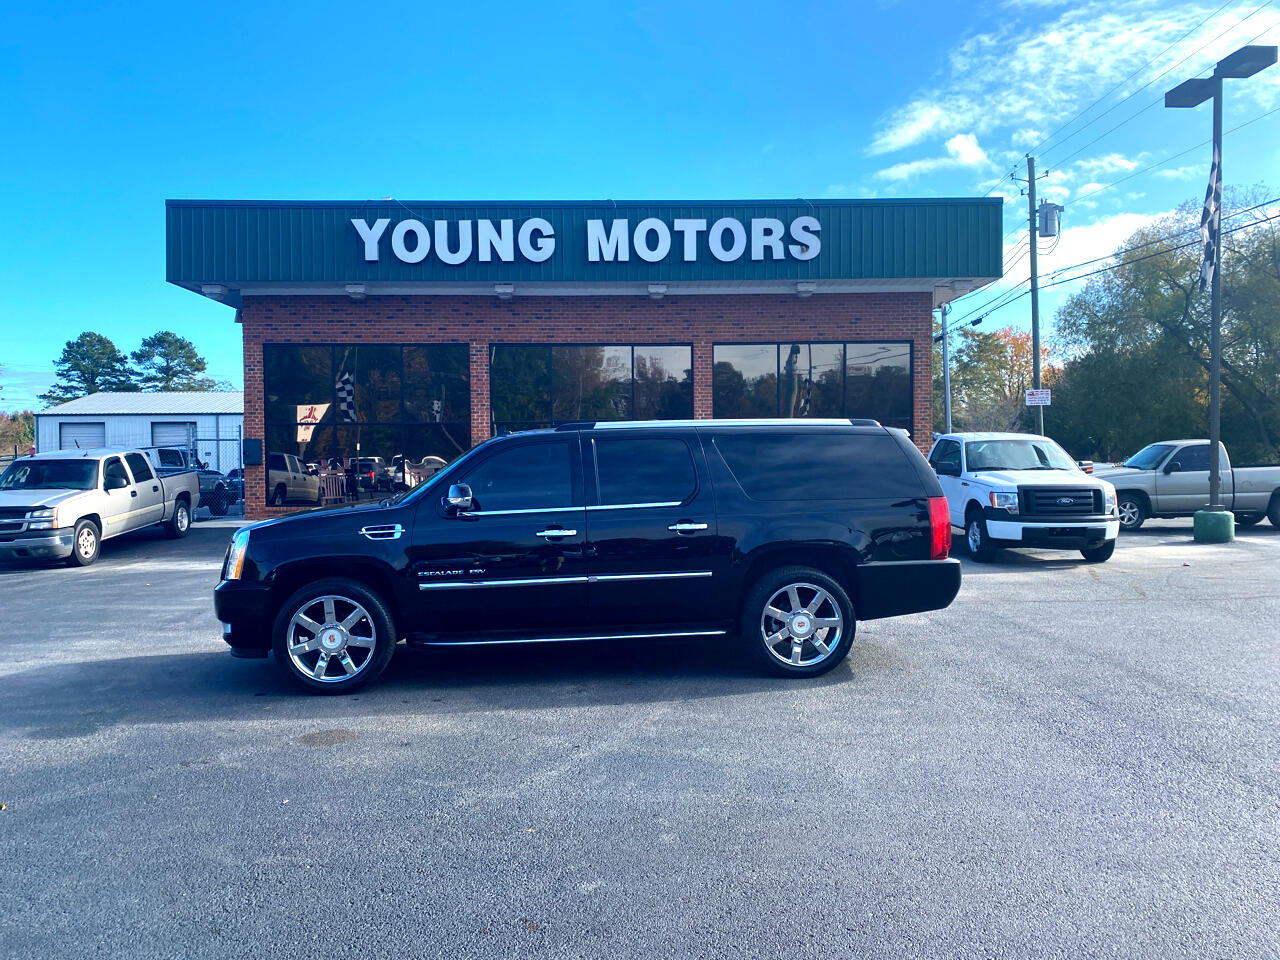 Used Cars For Sale Boaz Al 35956 Young Motors Boaz